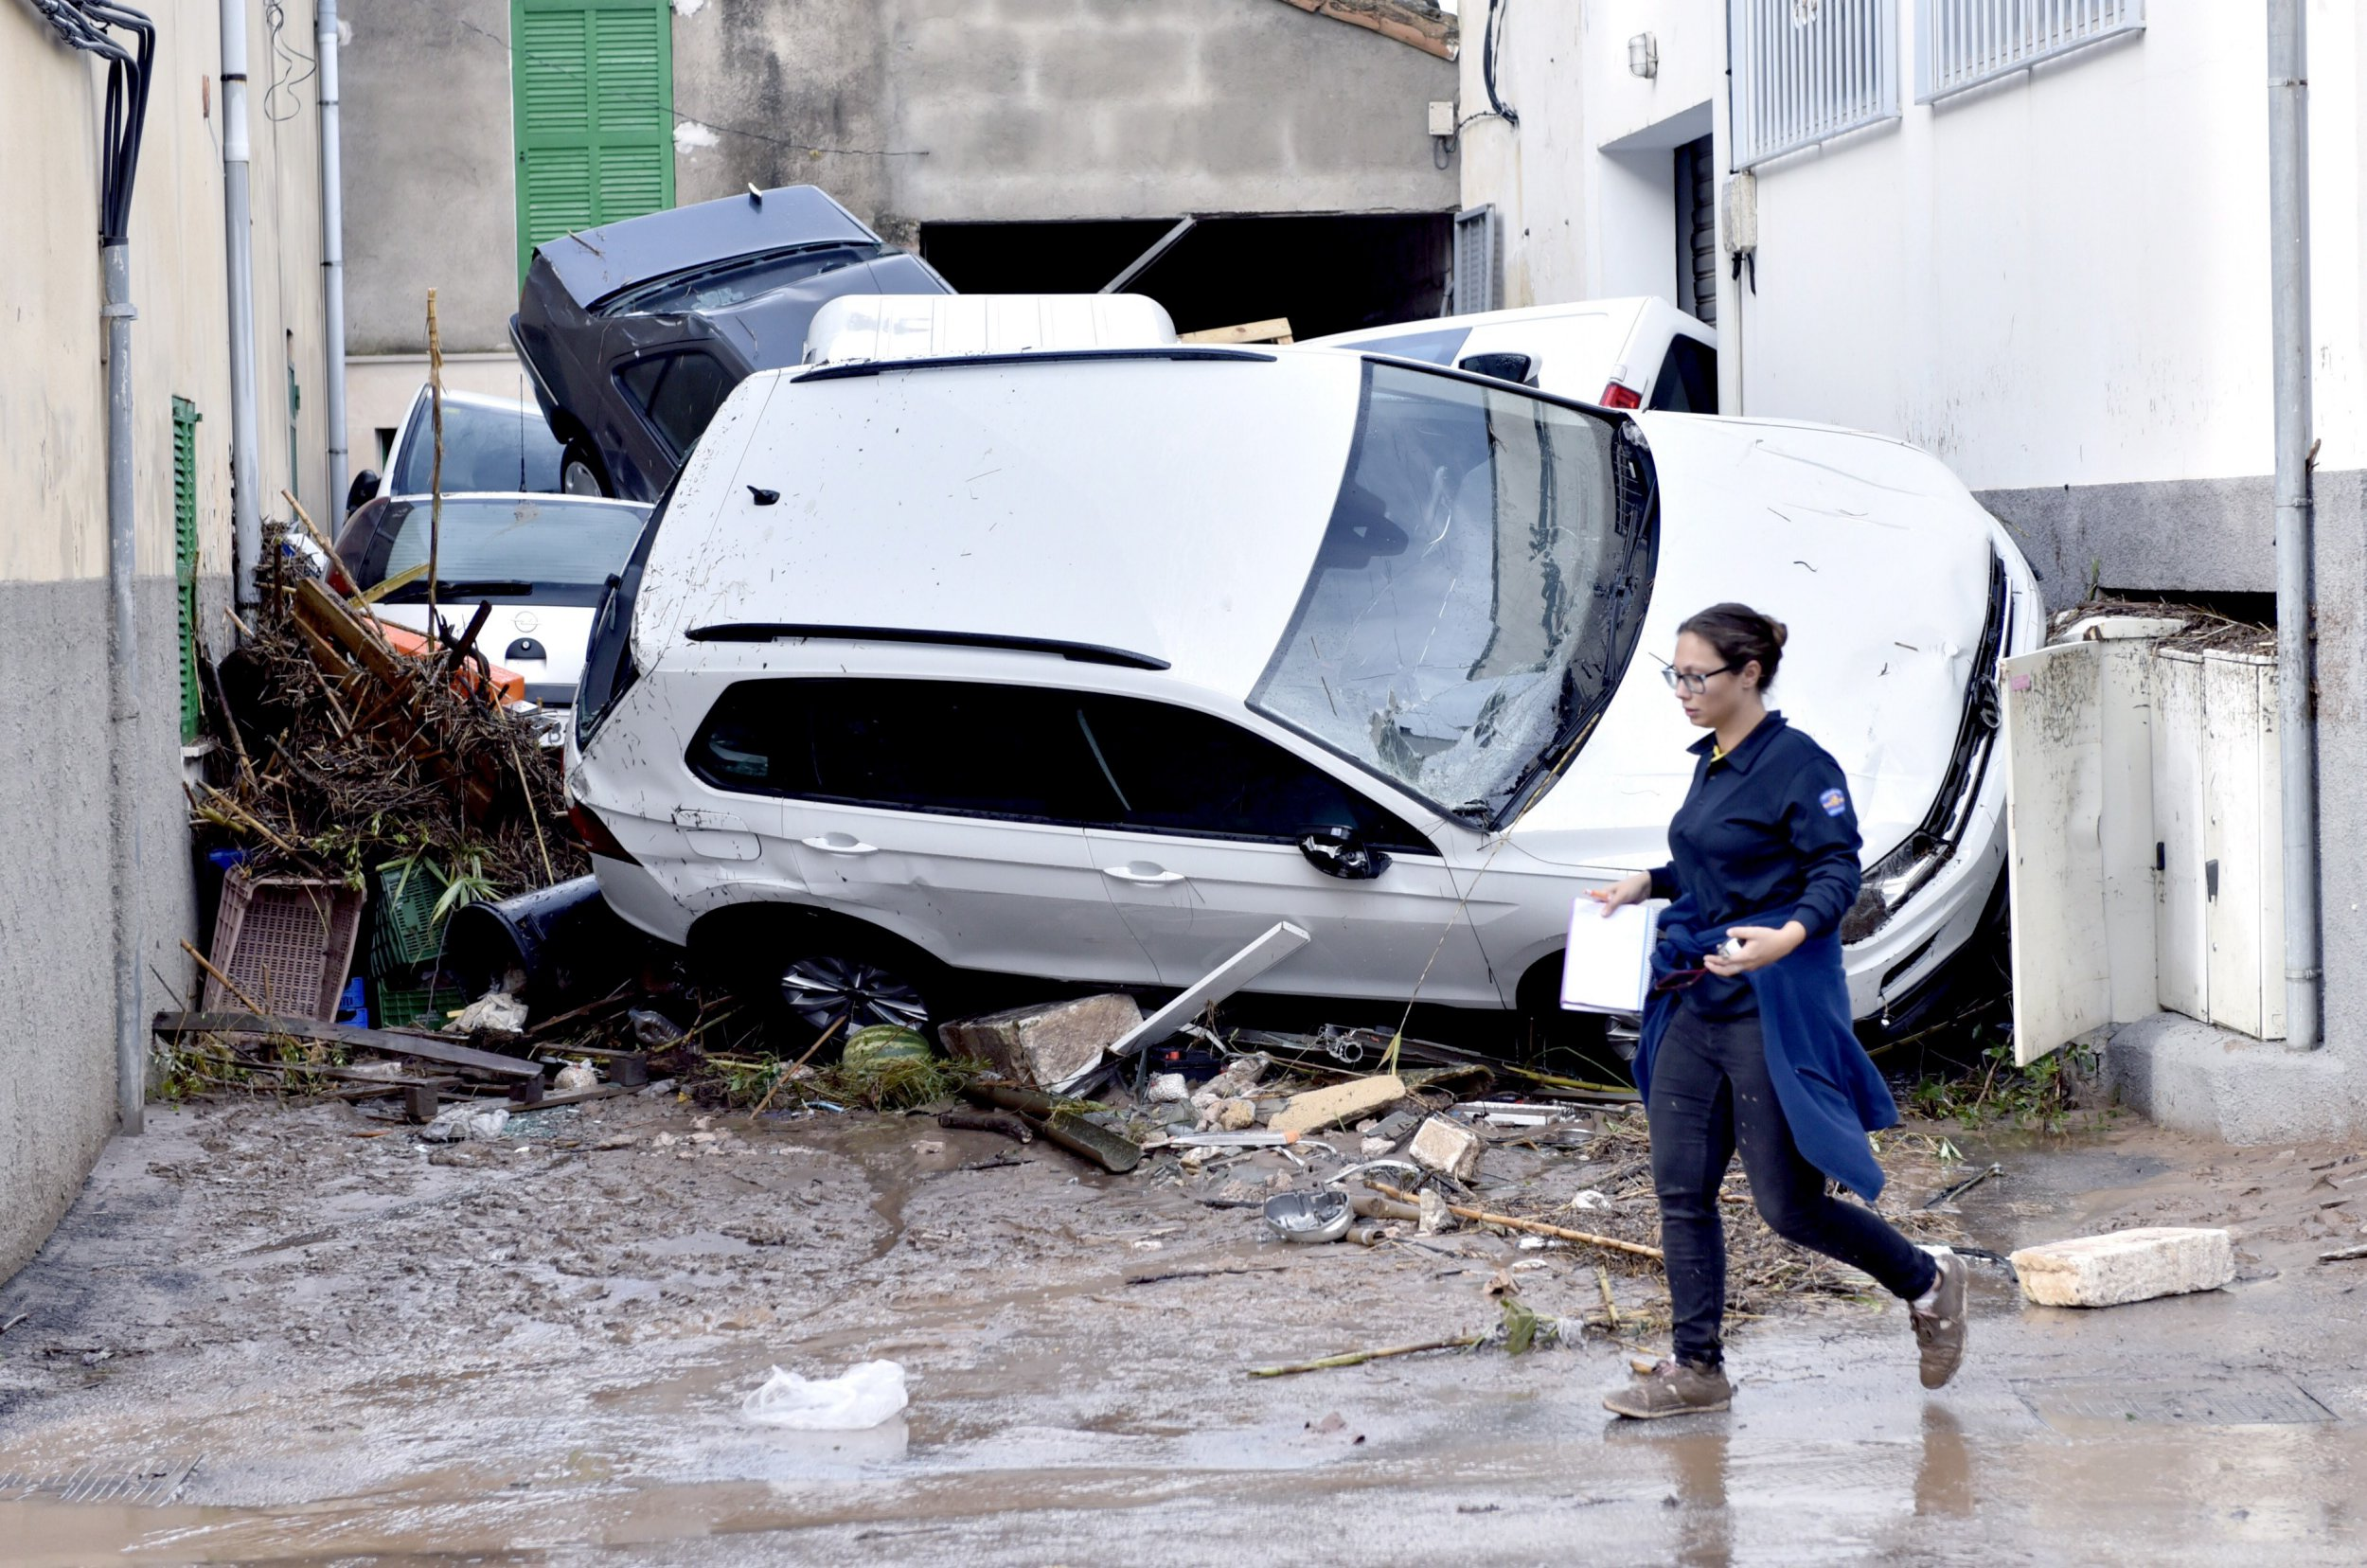 epa07083711 A resident walks past a pile of vehicles after they were damaged by flash floods in the village of Sant Llorenc des Cardasar in Mallorca, Spain, 10 October 2018. At least ten people died and a 5-years-old boy is missing due to heavy rains which caused the torrent of Sant Llorenc to overflow. Some 300 members of emergency services are taking part in the search operation. EPA/ATIENZA